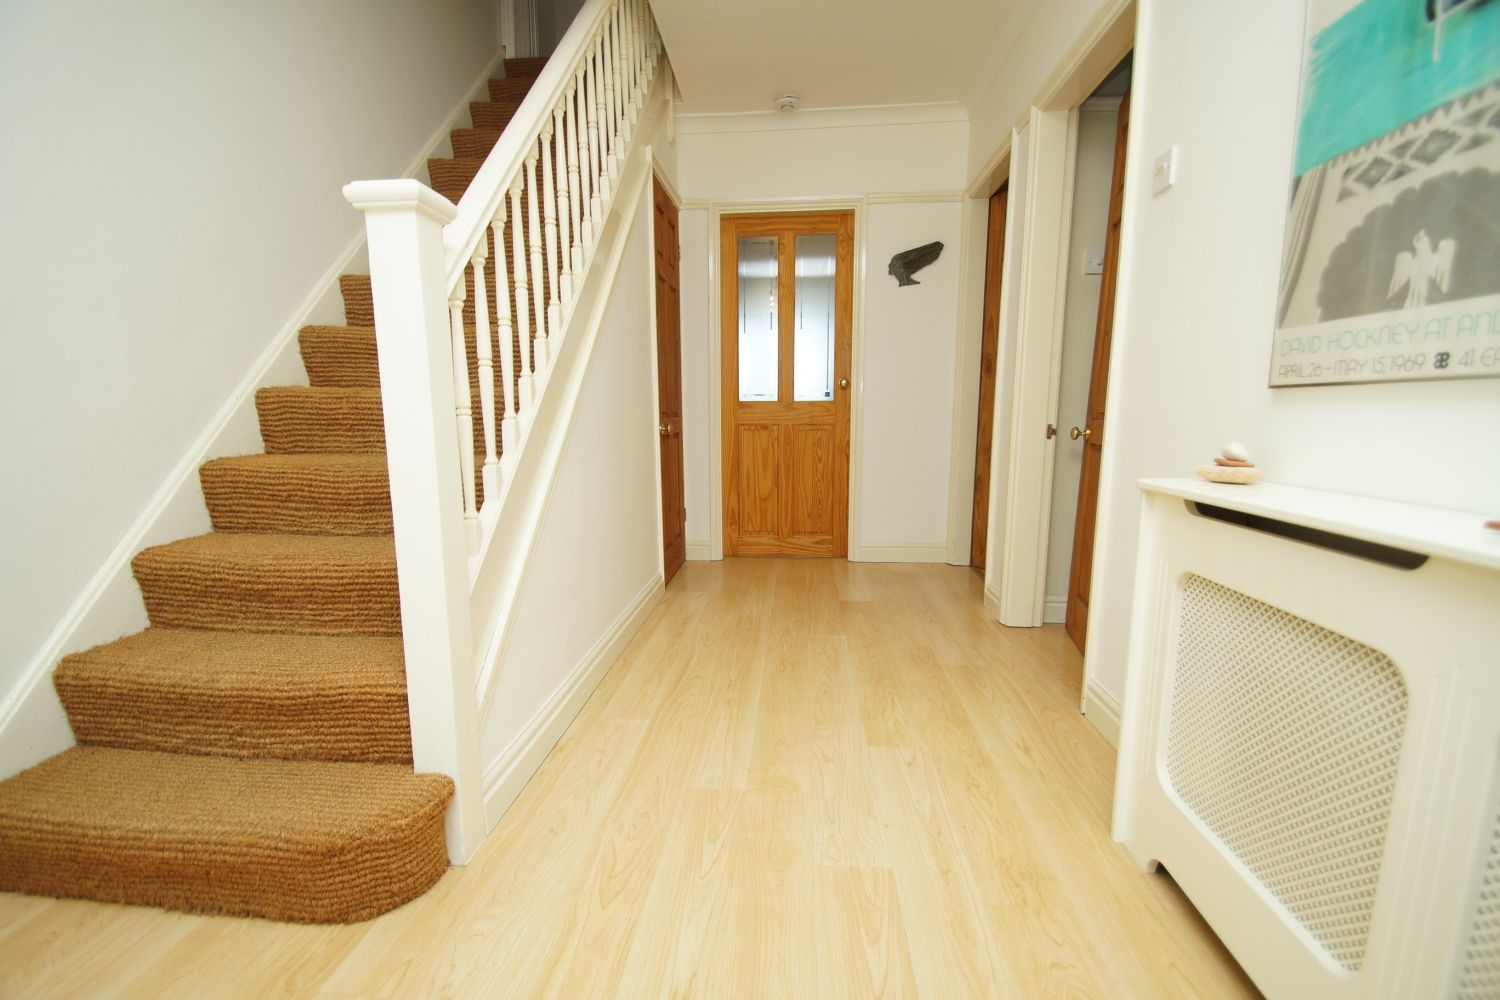 3 bed detached for sale in Fox Lane, Bromsgrove  - Property Image 3